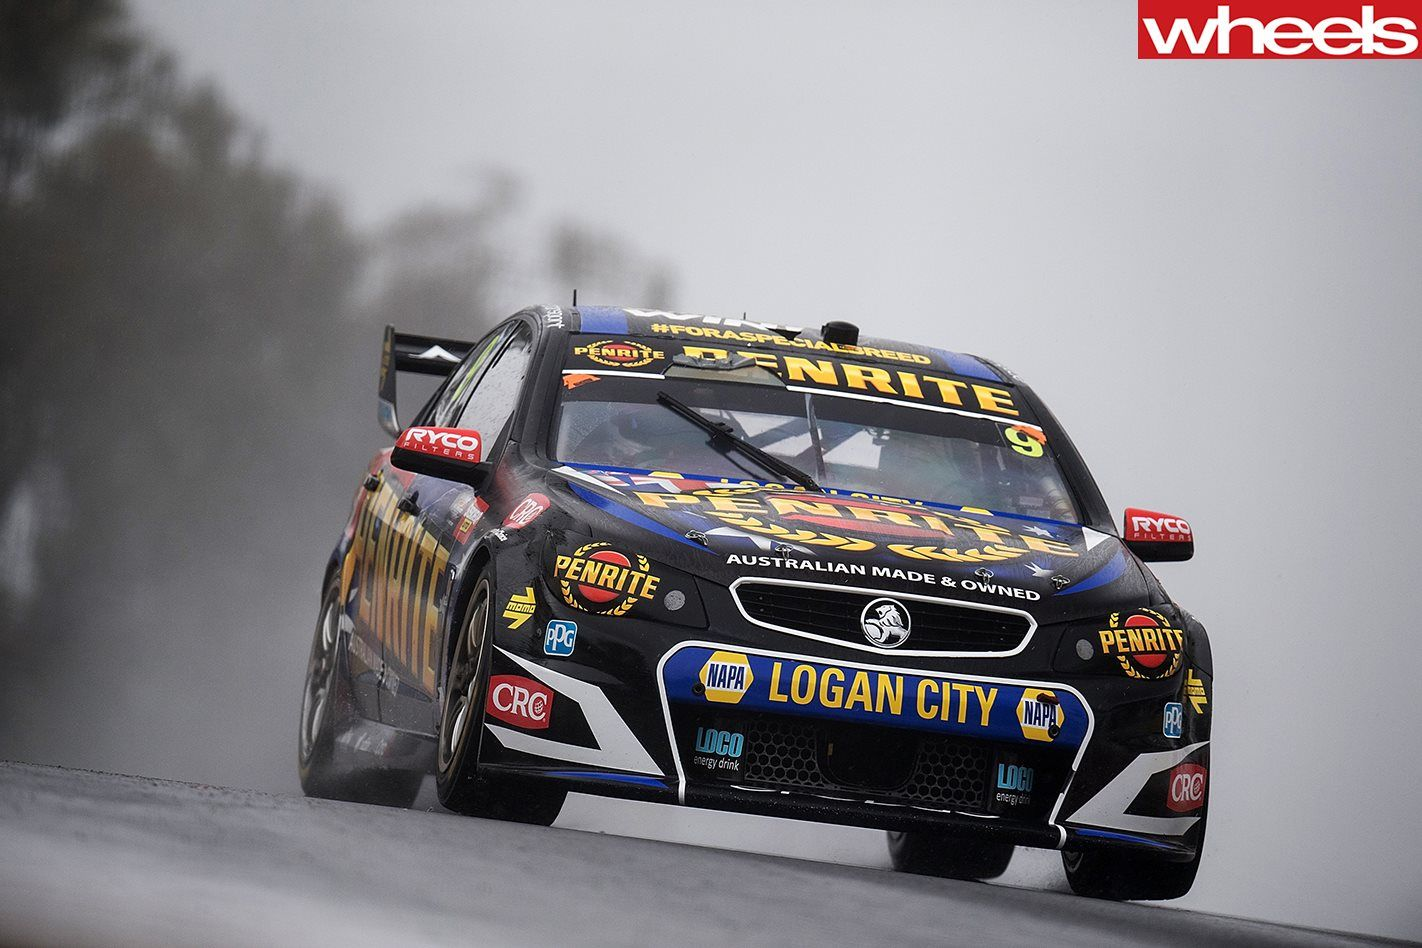 David Reynolds Luke Youlden 2017 Bathurst 1000 Winners A Great Victory For The Underdogs Super Cars Holden Commodore Australian V8 Supercars